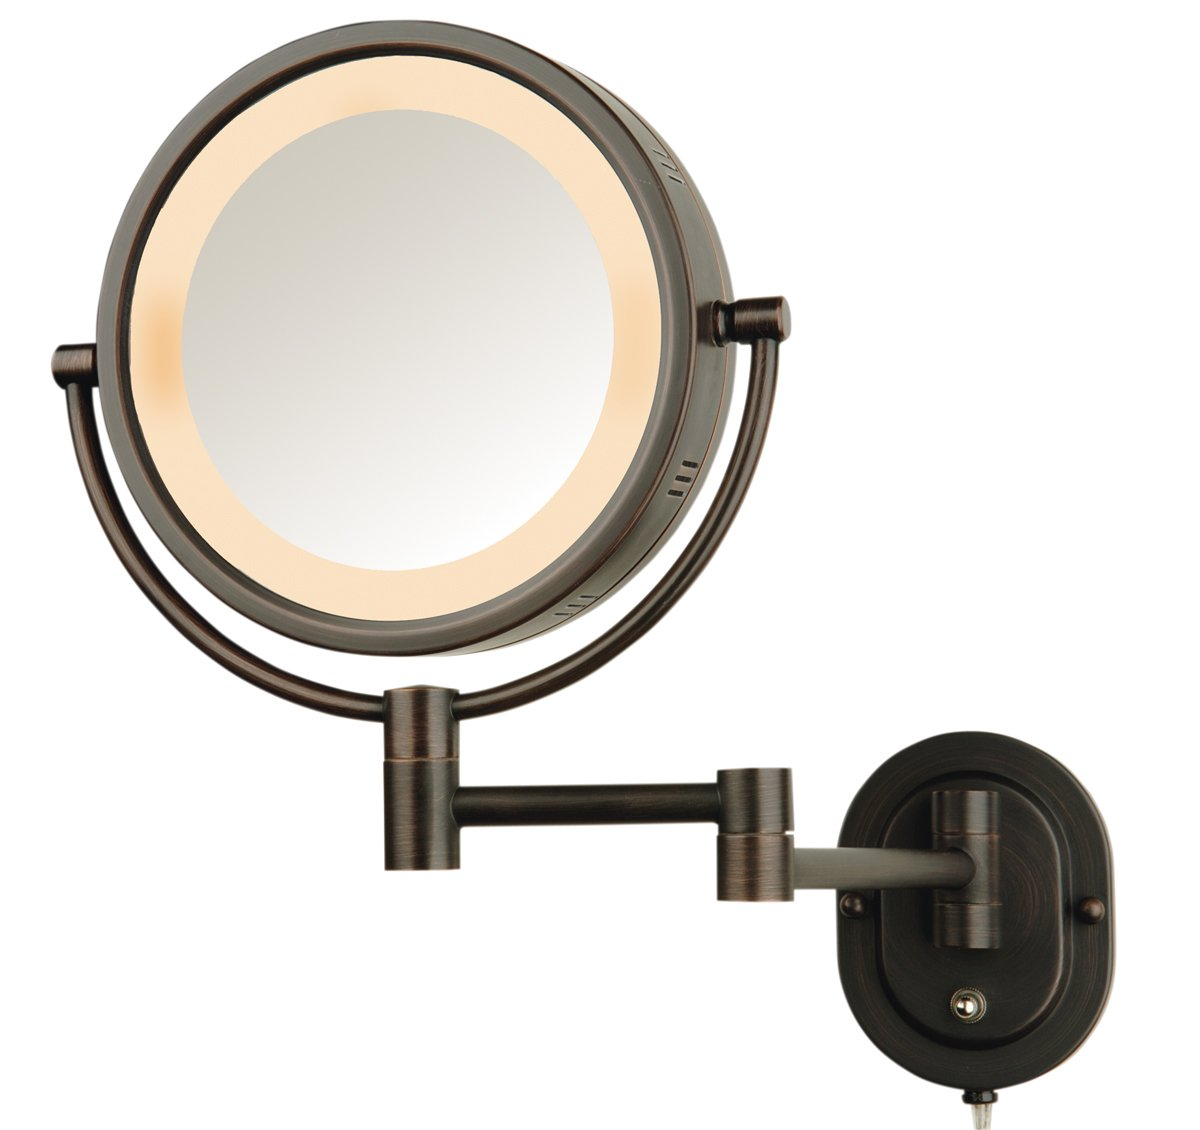 SeeAll 8'' Oil Rubbed Bronze Finish Dual Sided Surround Light Wall Mount Makeup Mirror